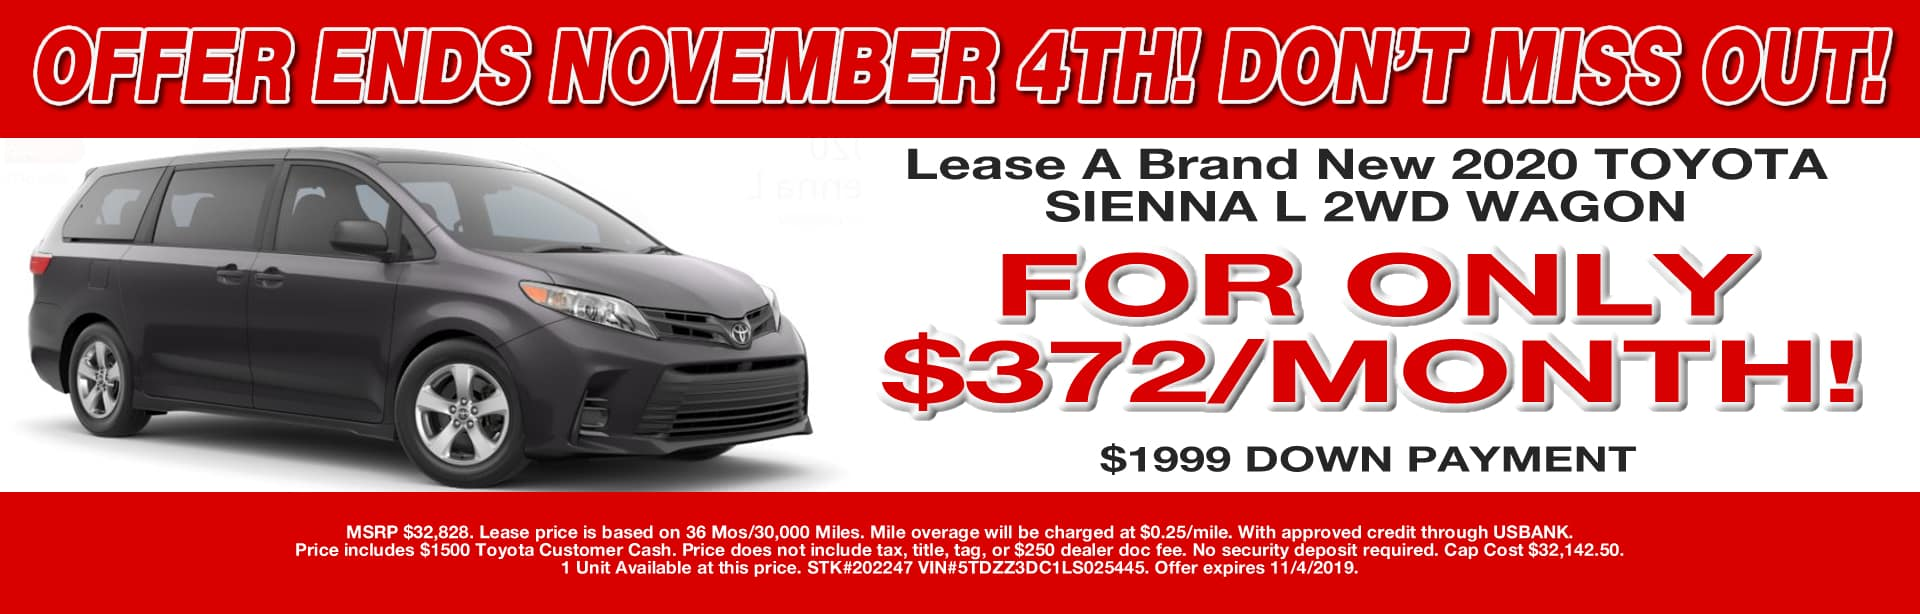 SIENNA LEASE OFFER CAIN TOYOTA NORTH CANTON OHIO OCT 19